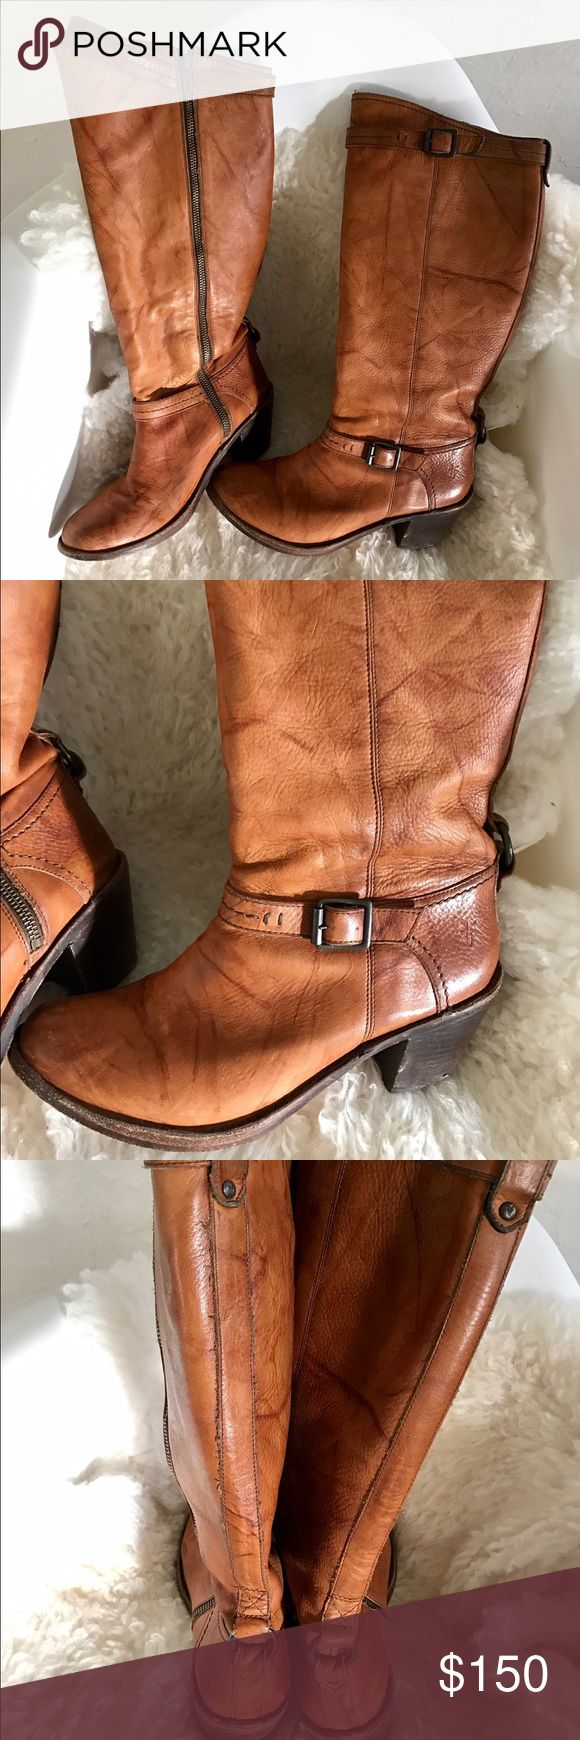 """Frye light brown // tan leather boots Beautiful boots with 2"""" heel and zip inside. Easy on and off. Bottoms and heels have some wear (see photo). Frye Shoes Heeled Boots"""